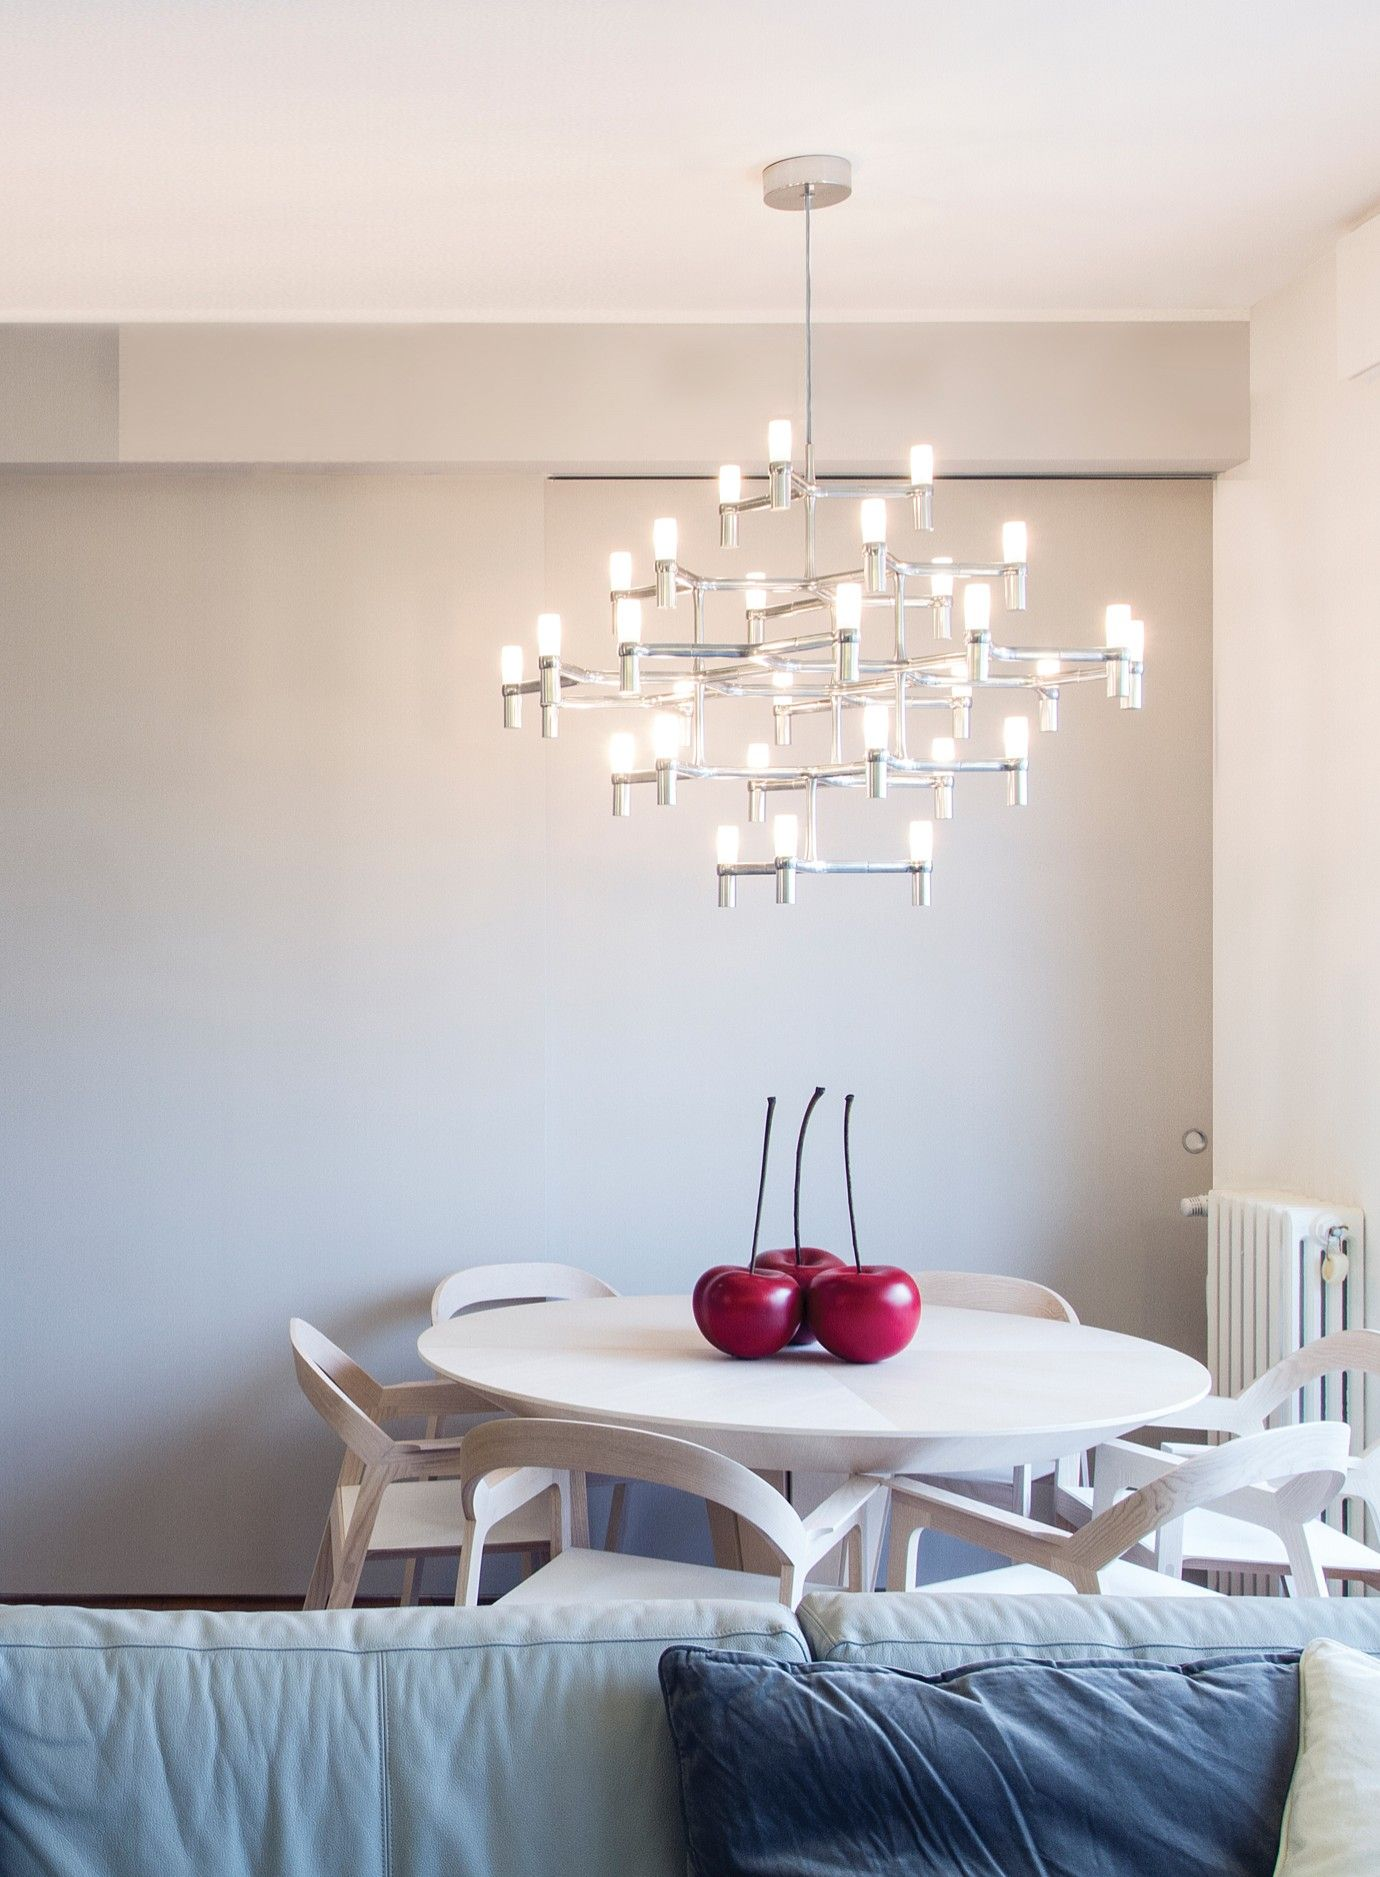 Pendant chandeliers with modular structure in diecasted aluminium